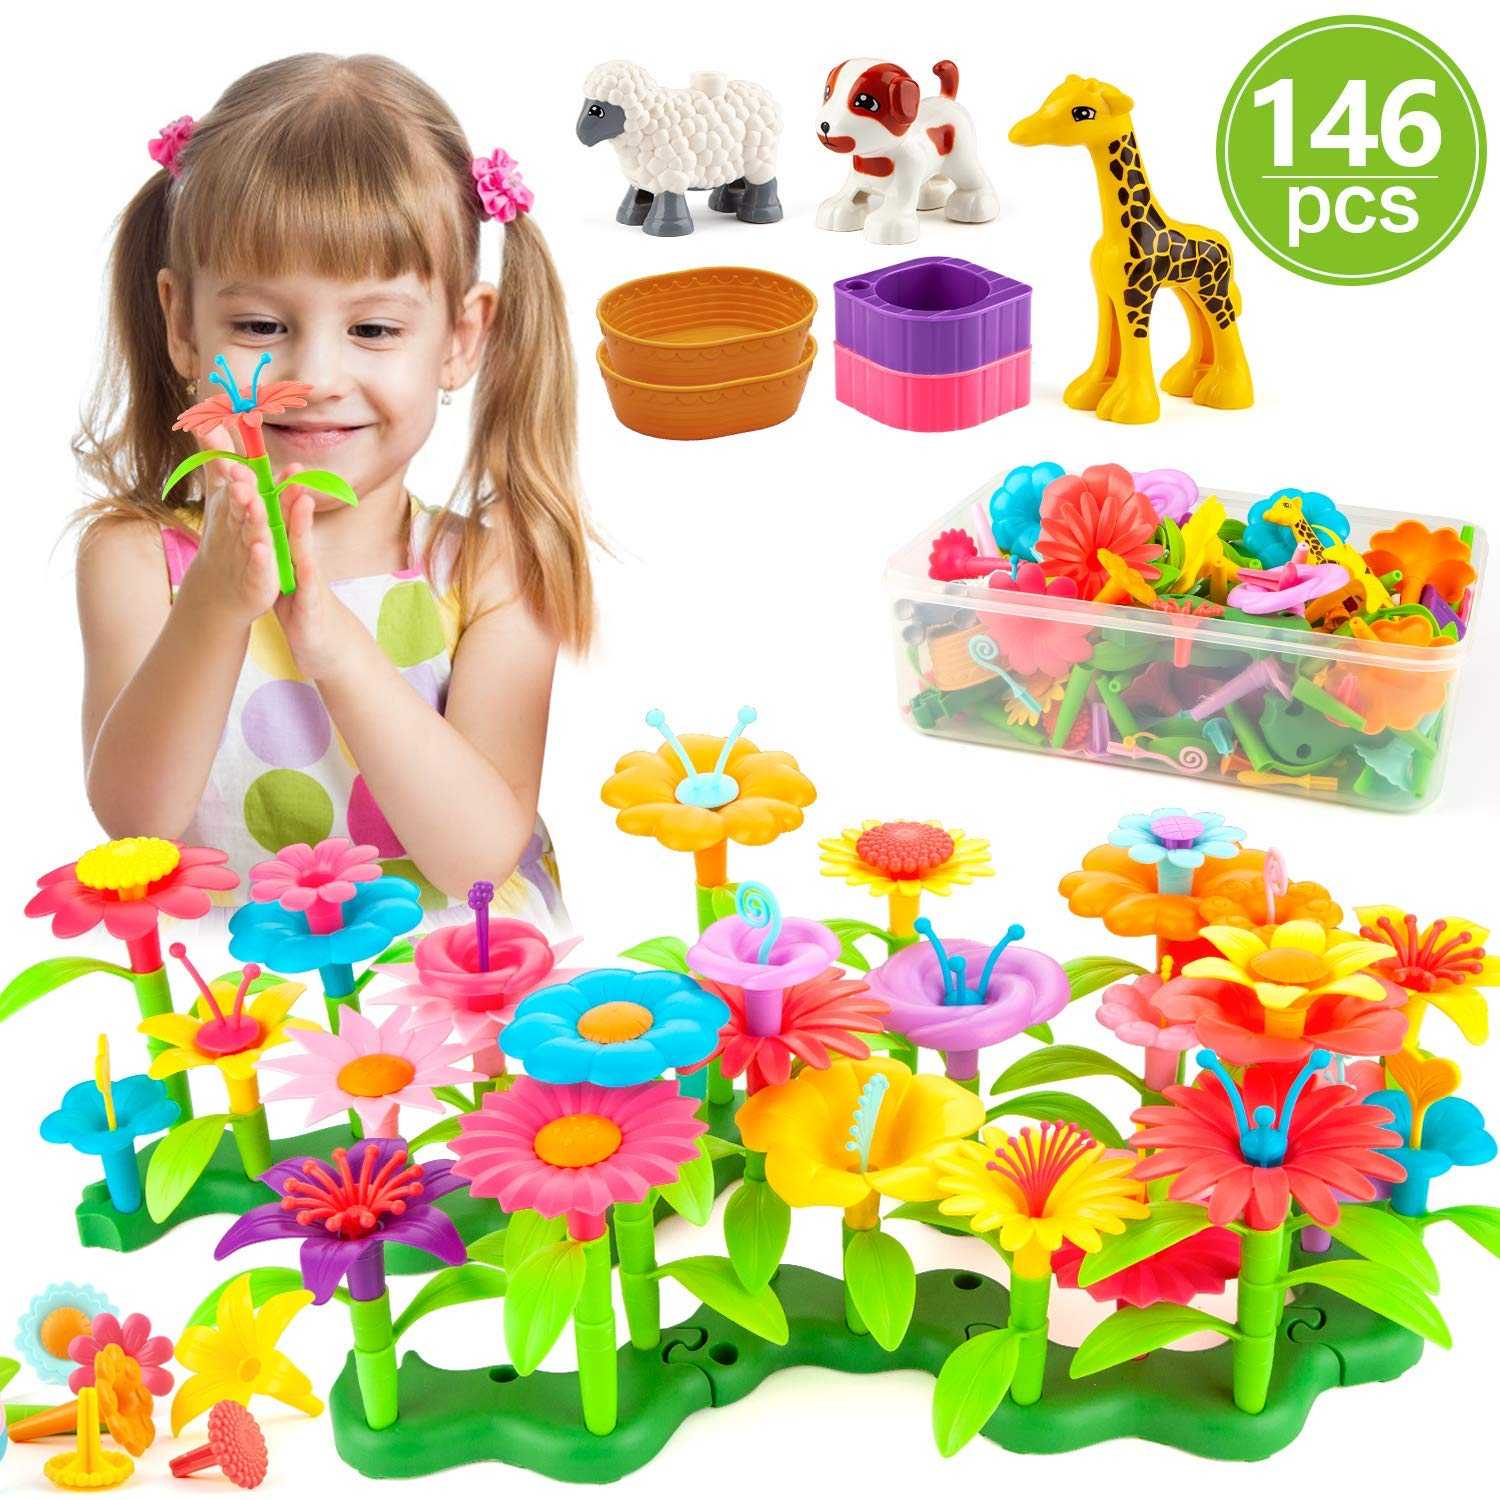 AOKIWO Flower Garden Building Toys Set, 146 PCS Flower Building Toy Educational Creative Playset for Age 3,4,5,6,7 Year Old Gifts